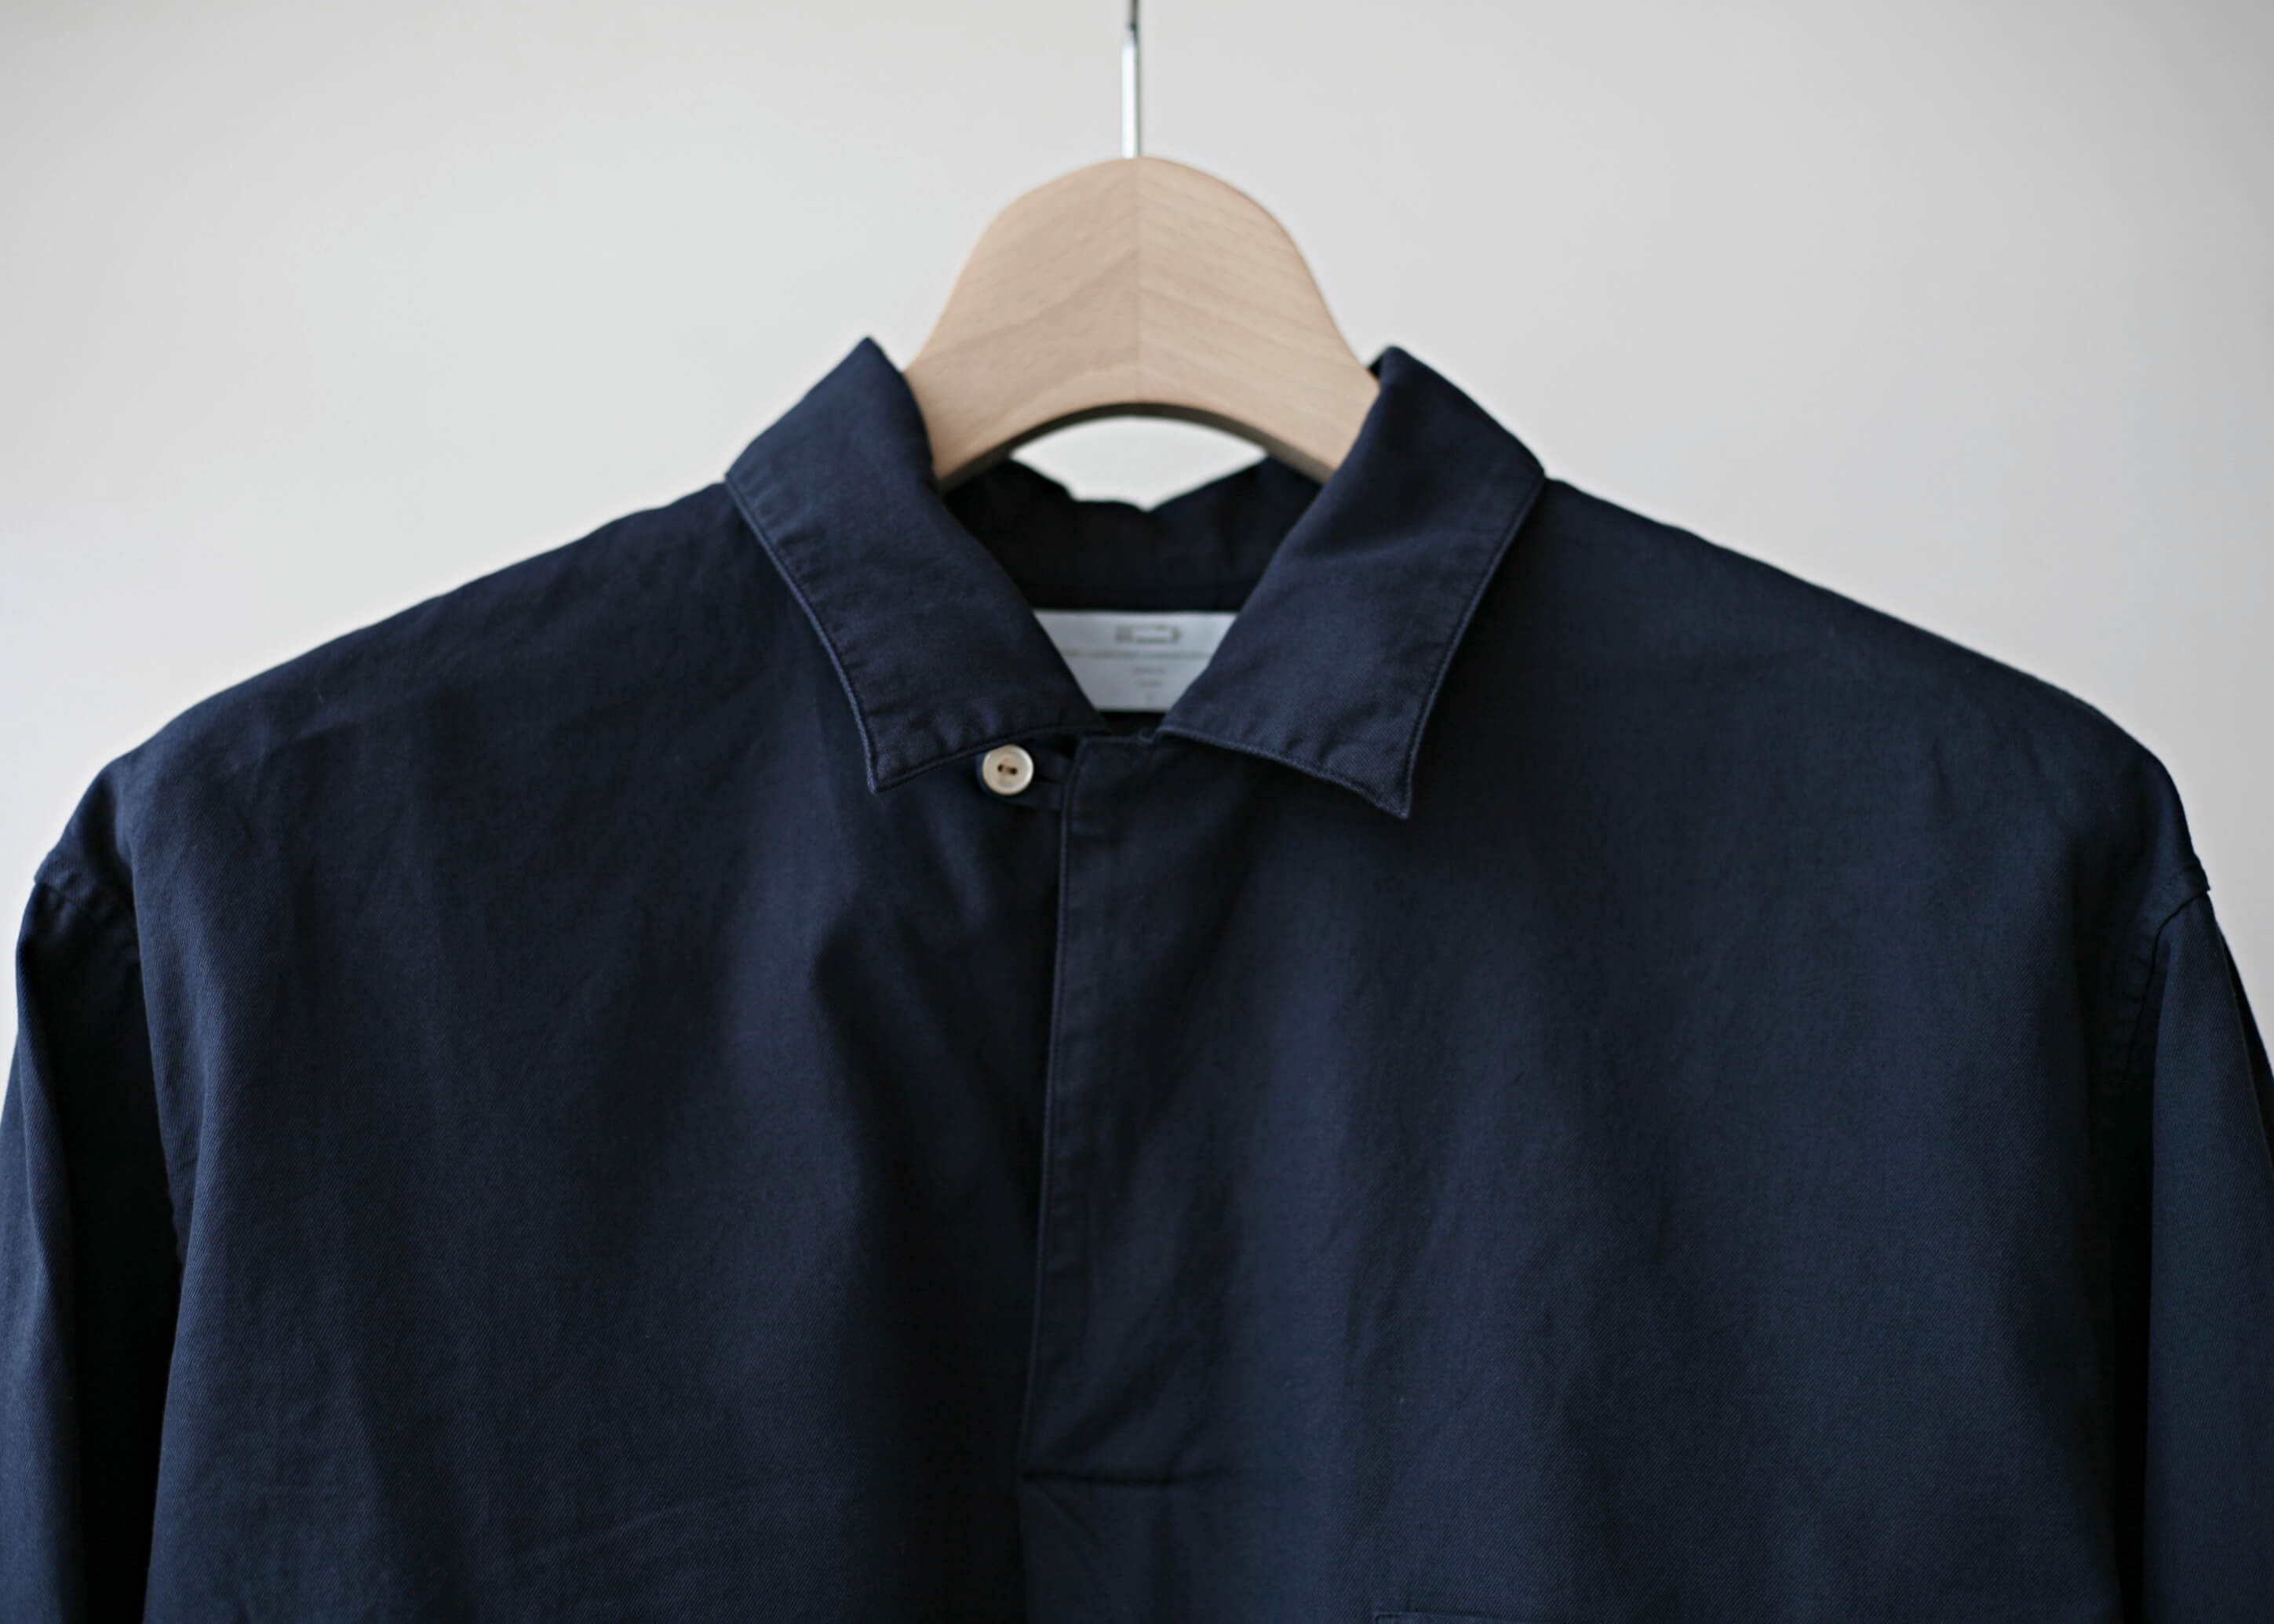 bunt skipper shirts navy 釦を閉めてアップ